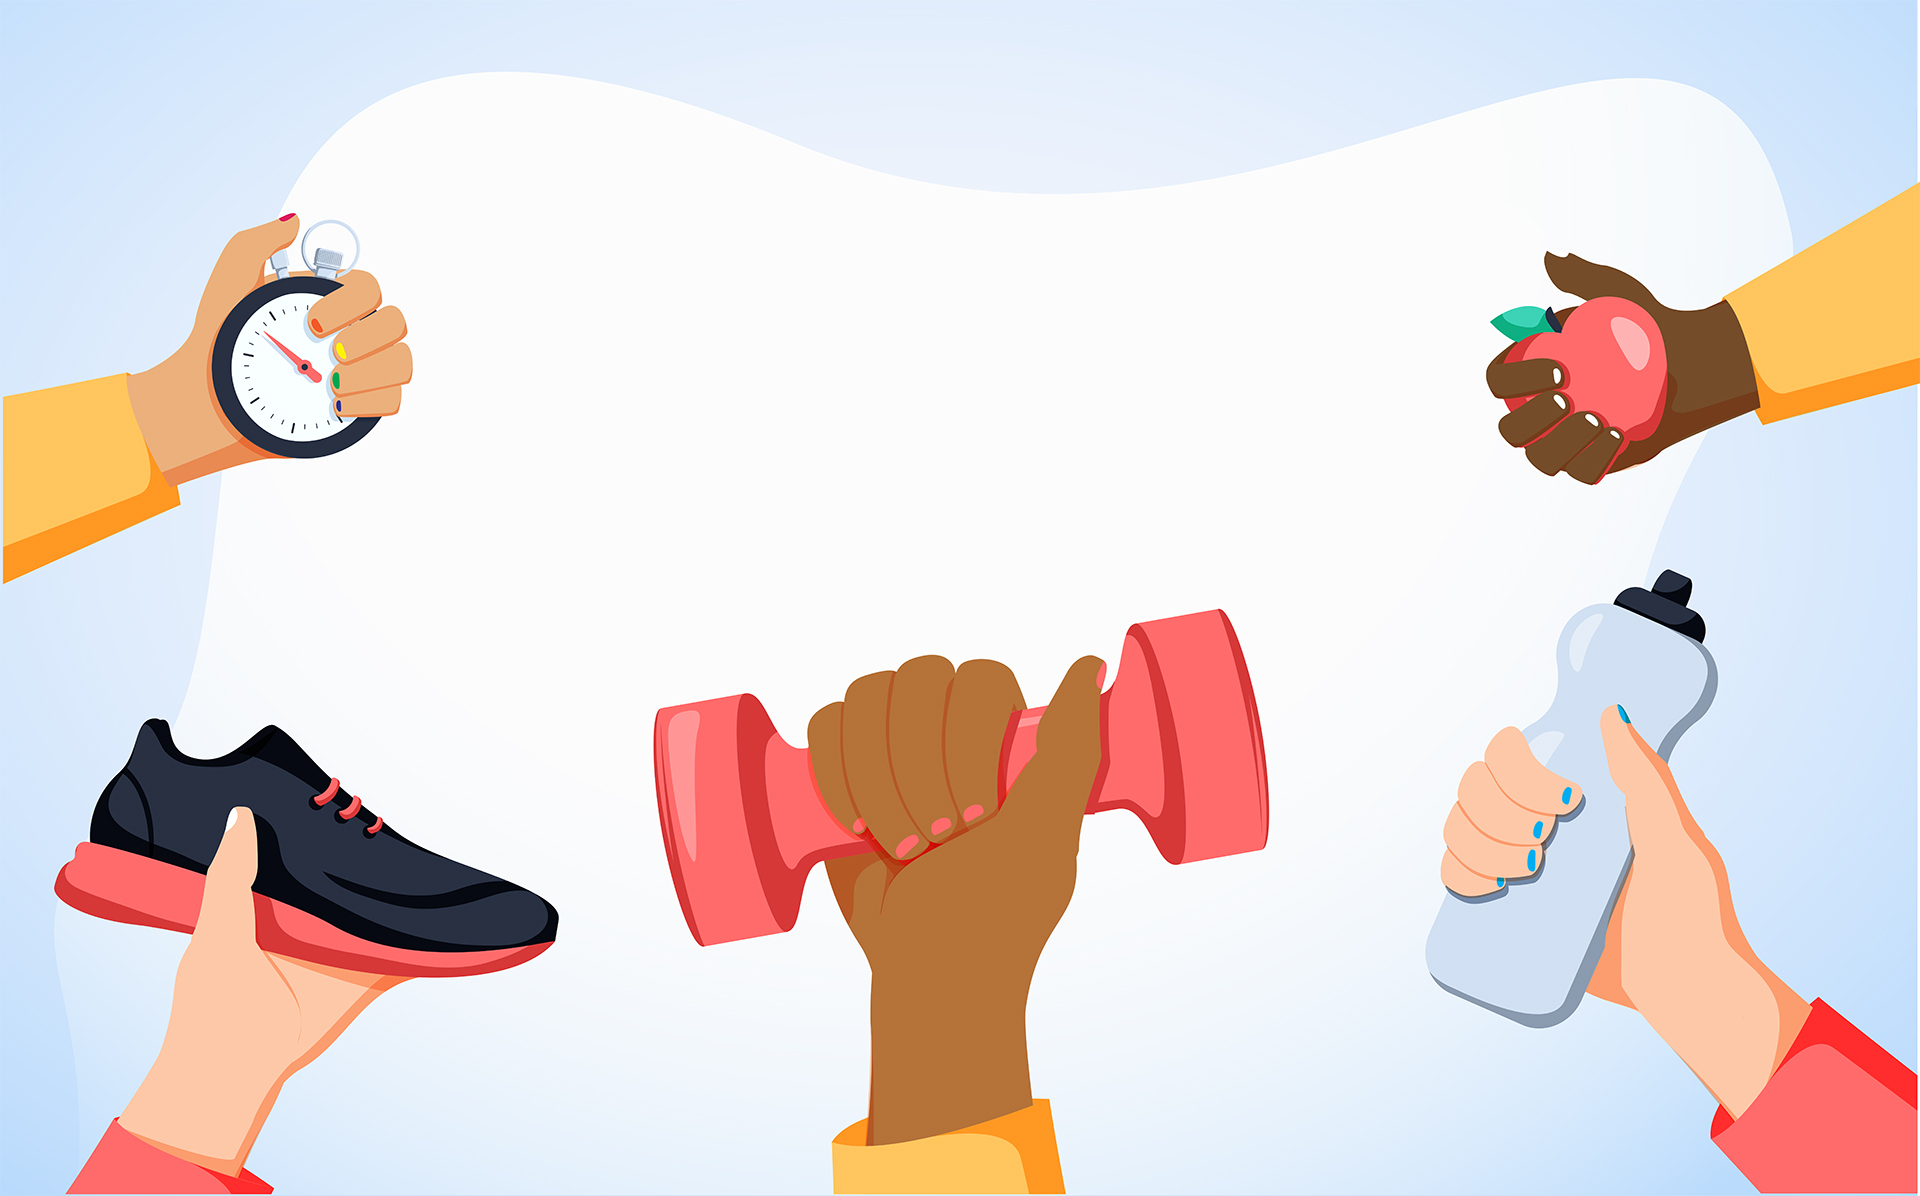 illustration of five arms holding workout gear reaching in a circle toward each other. They're holding an apple, a water bottle, a weight, a running shoe, and a stopwatch. The background is blue and white.